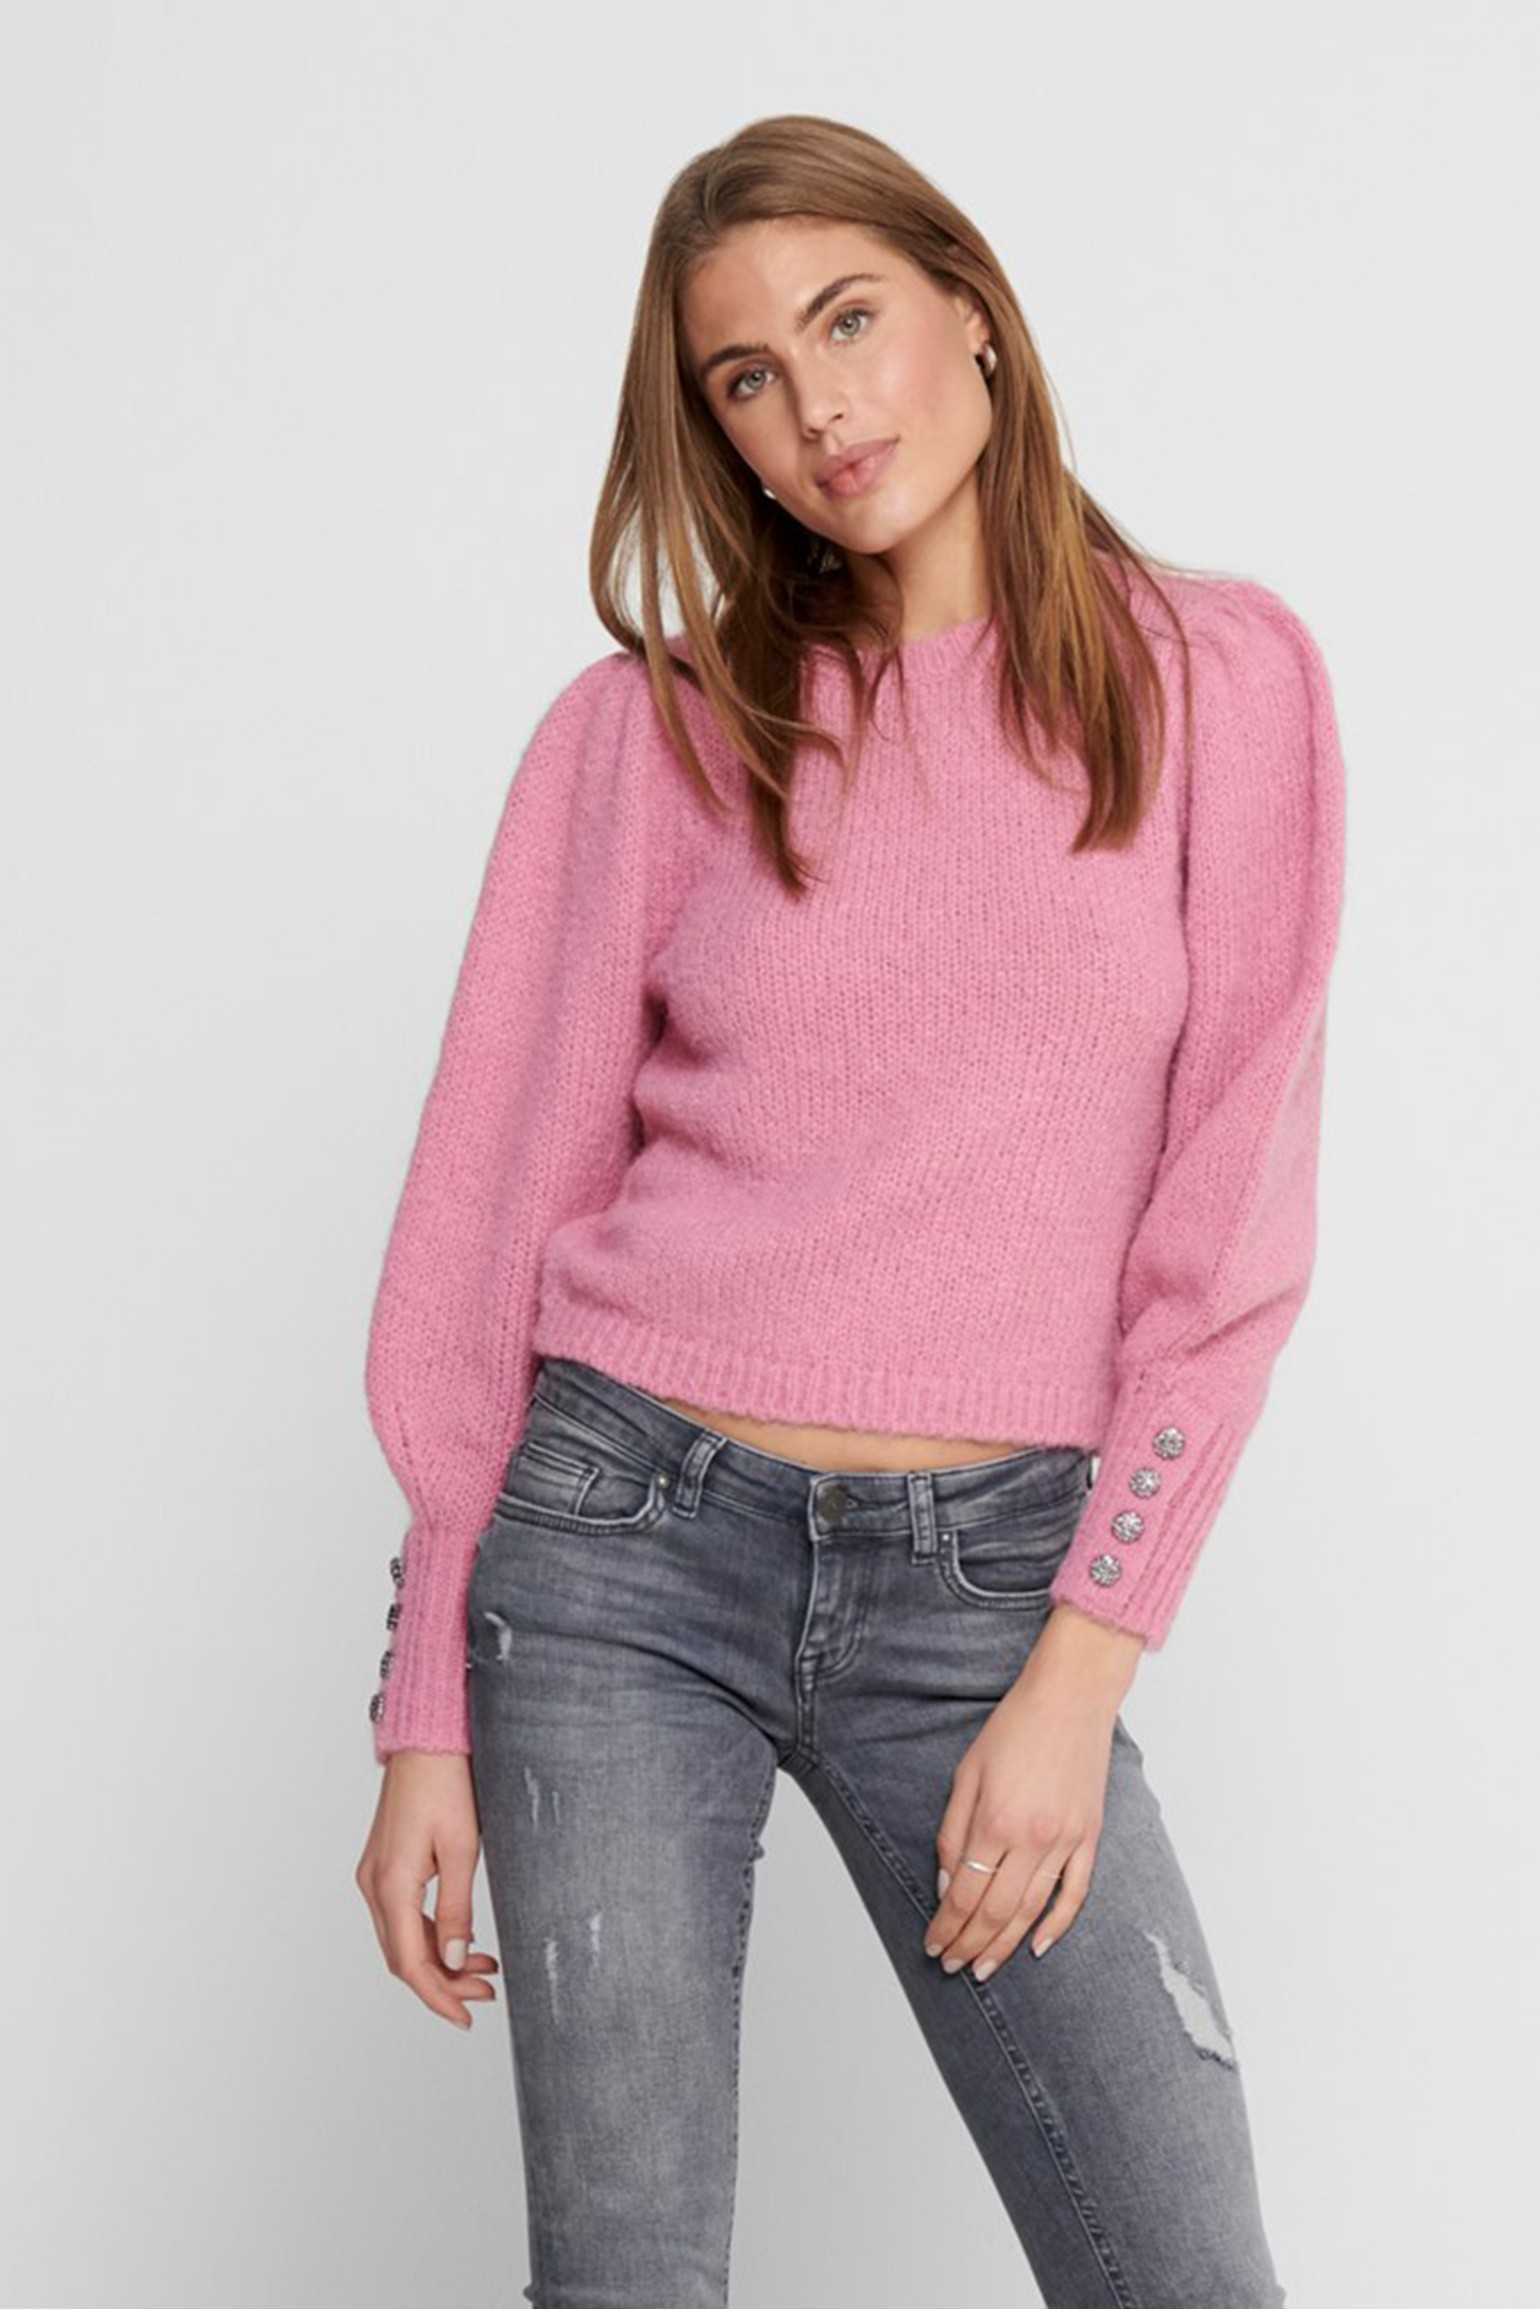 Solid Colored Knitted Pullover - Pink